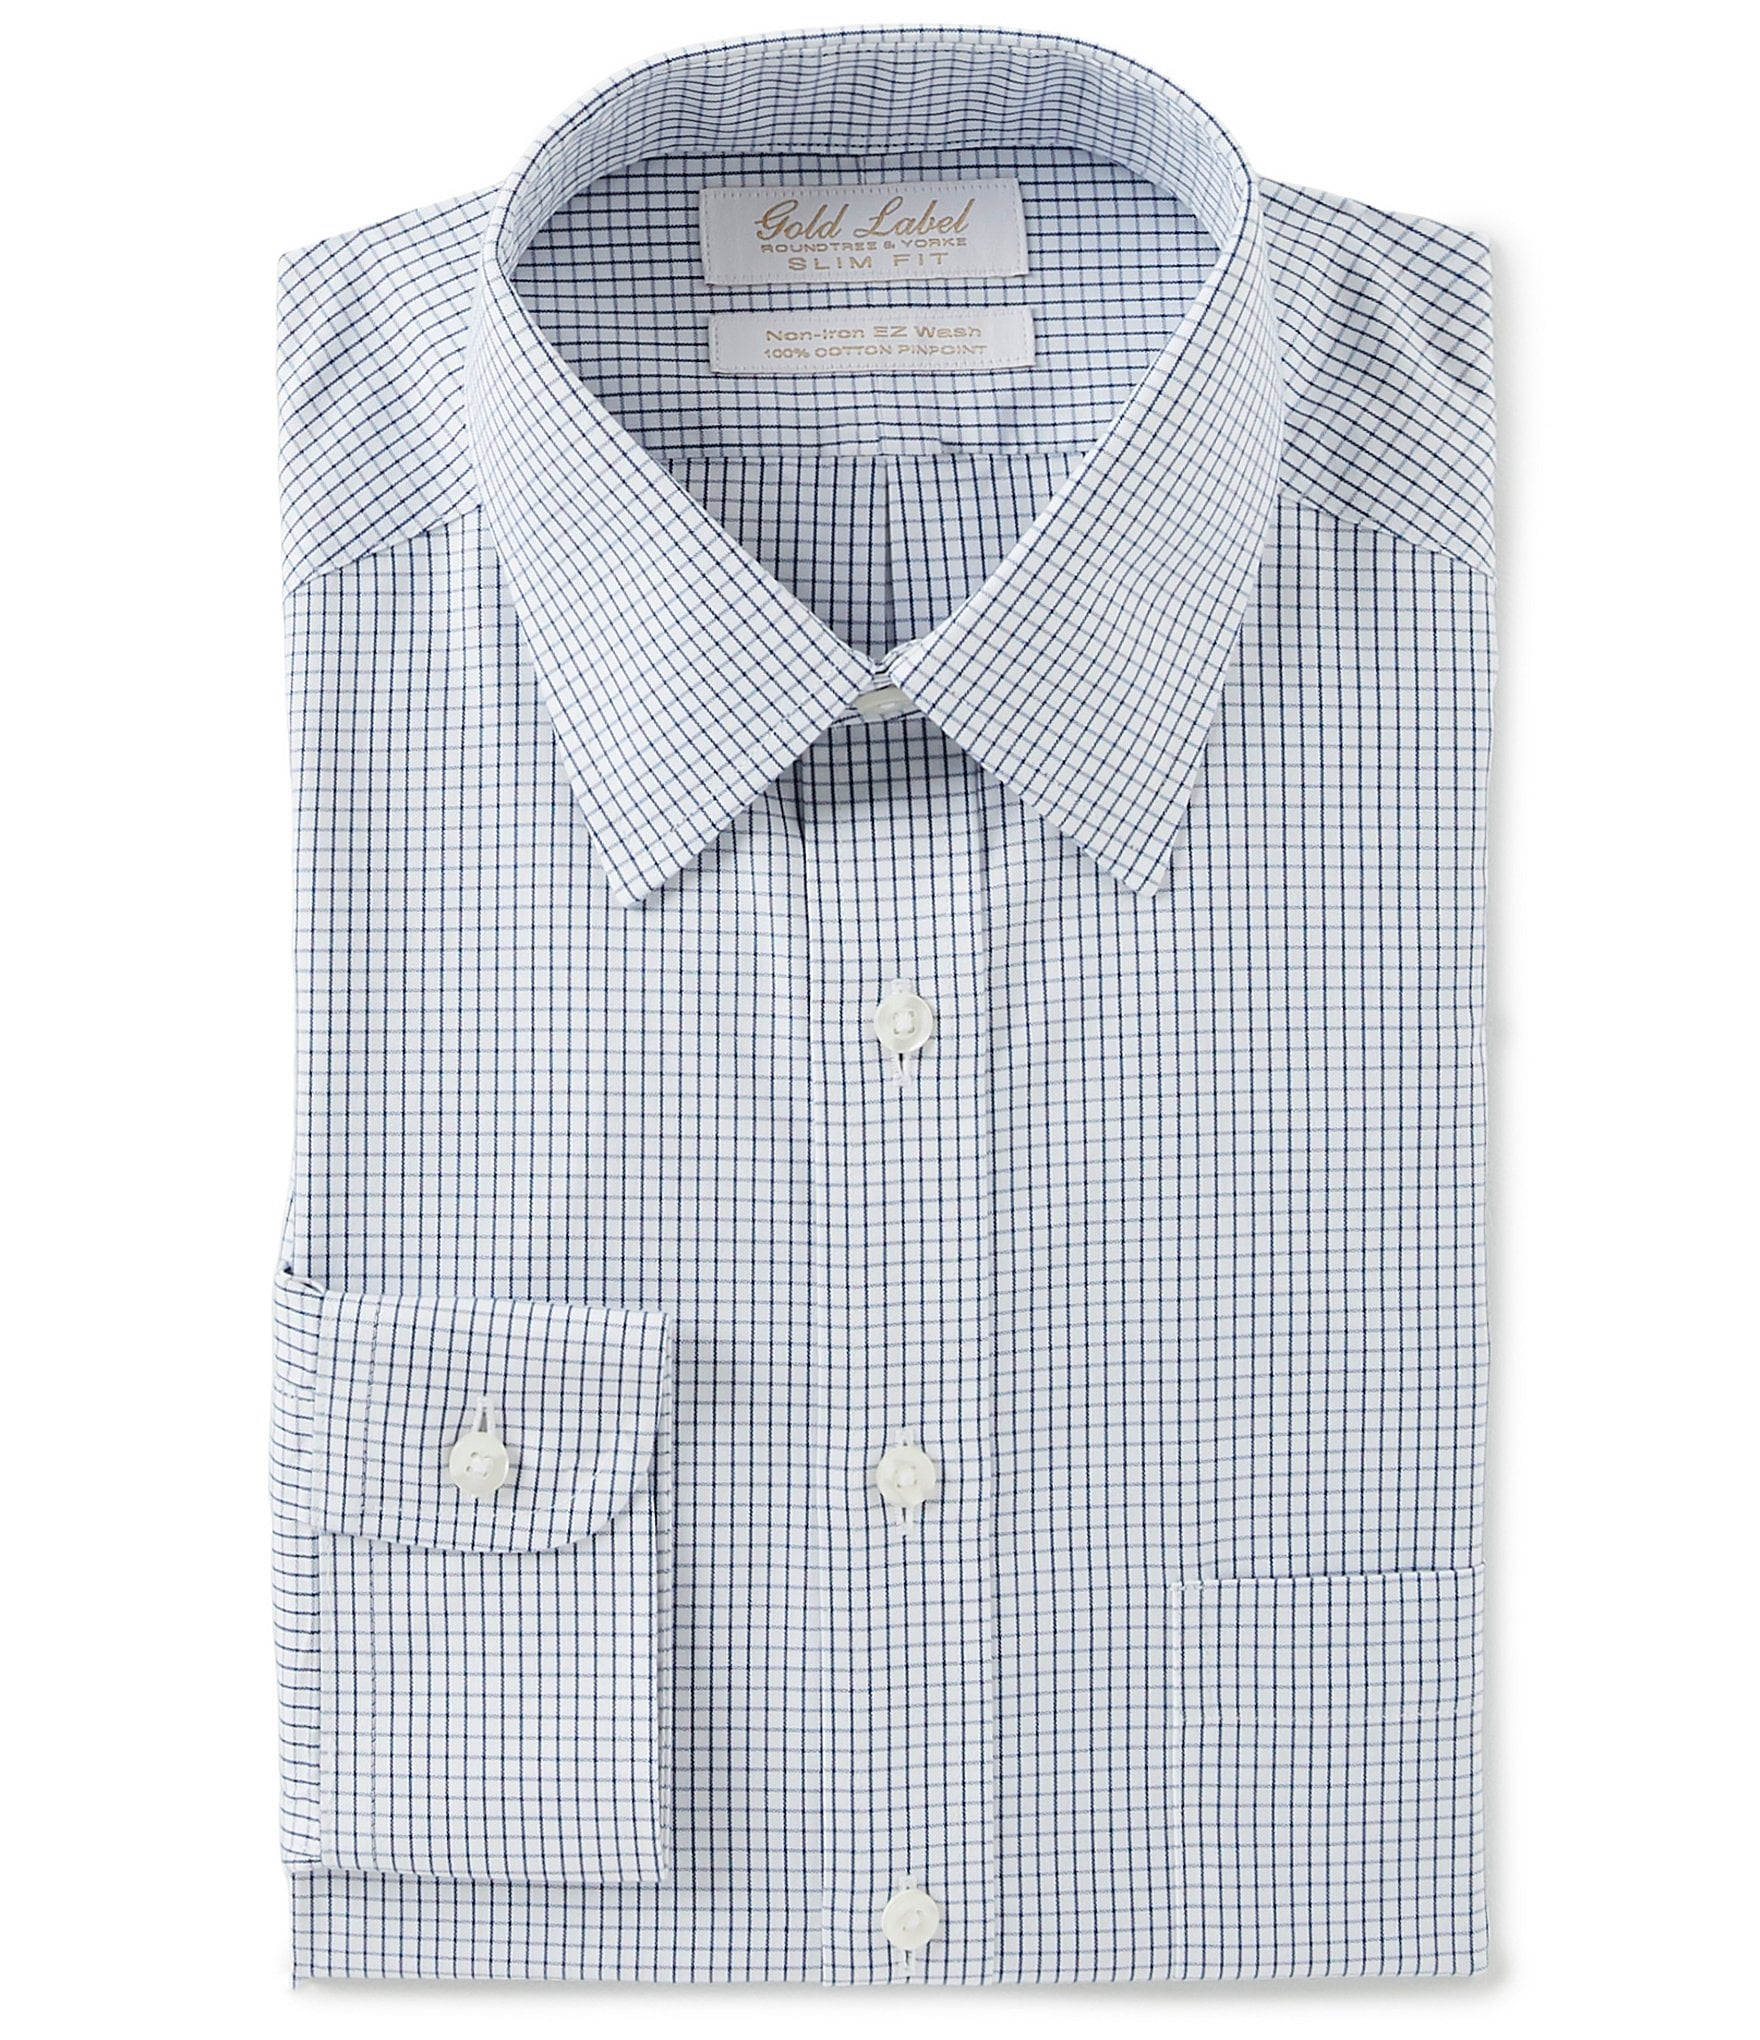 49604733ed7e Gold Label Roundtree & Yorke Non-Iron Slim Fit Point Collar Grid Patterned  Dress Shirt | Dillard's